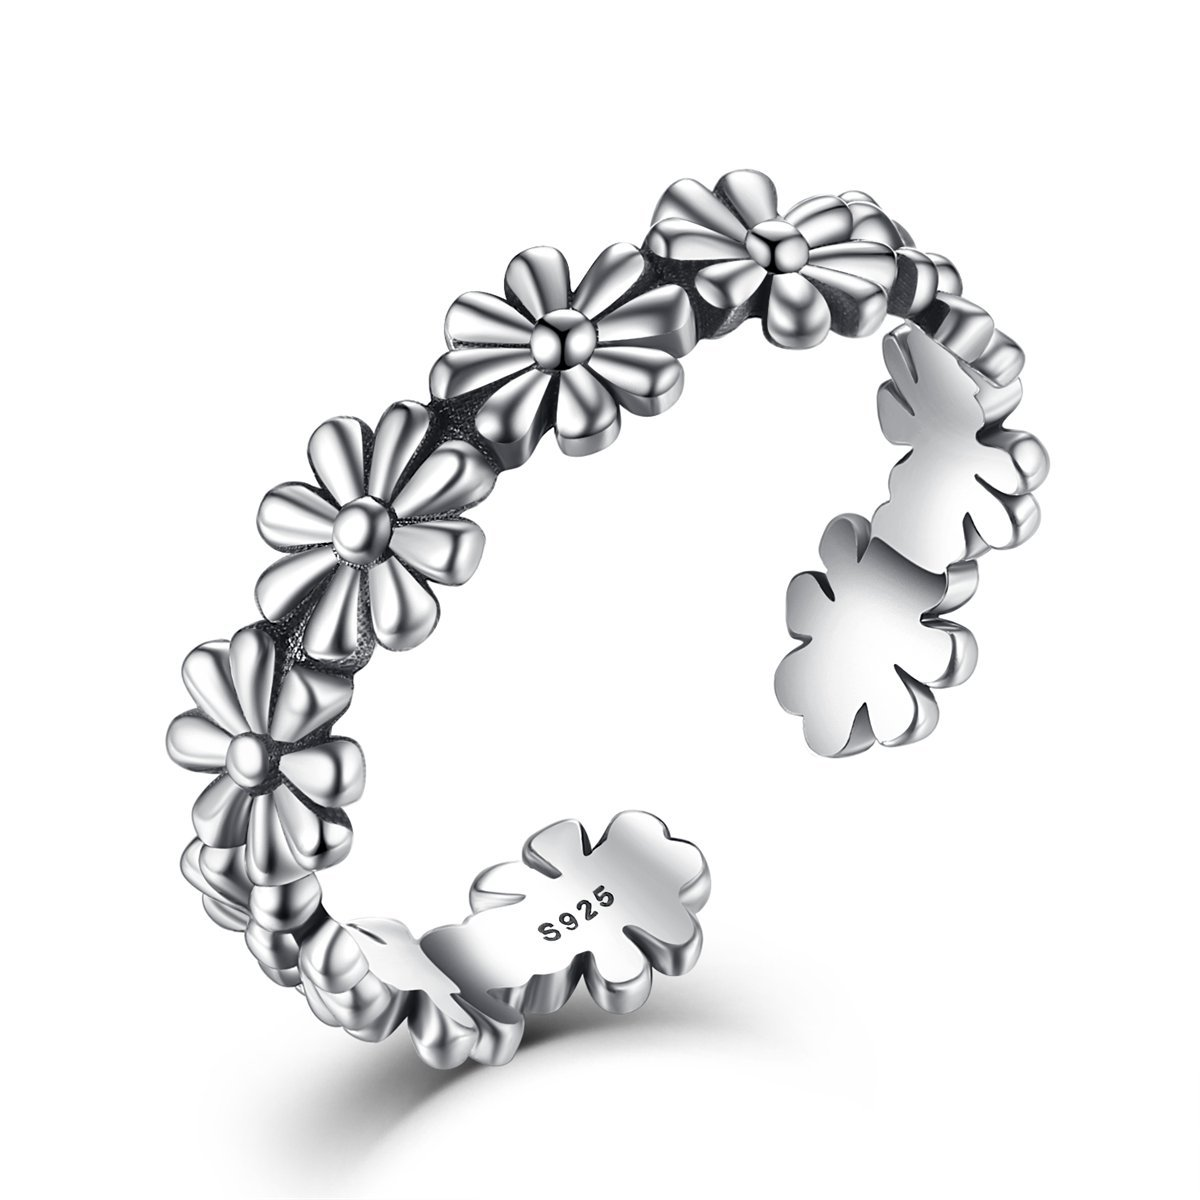 Women Adjustable Ring,925 Sterling Silver Fashion Daisy Flower Open Ring Band, Fashion Jewelry Gift JOEMOD